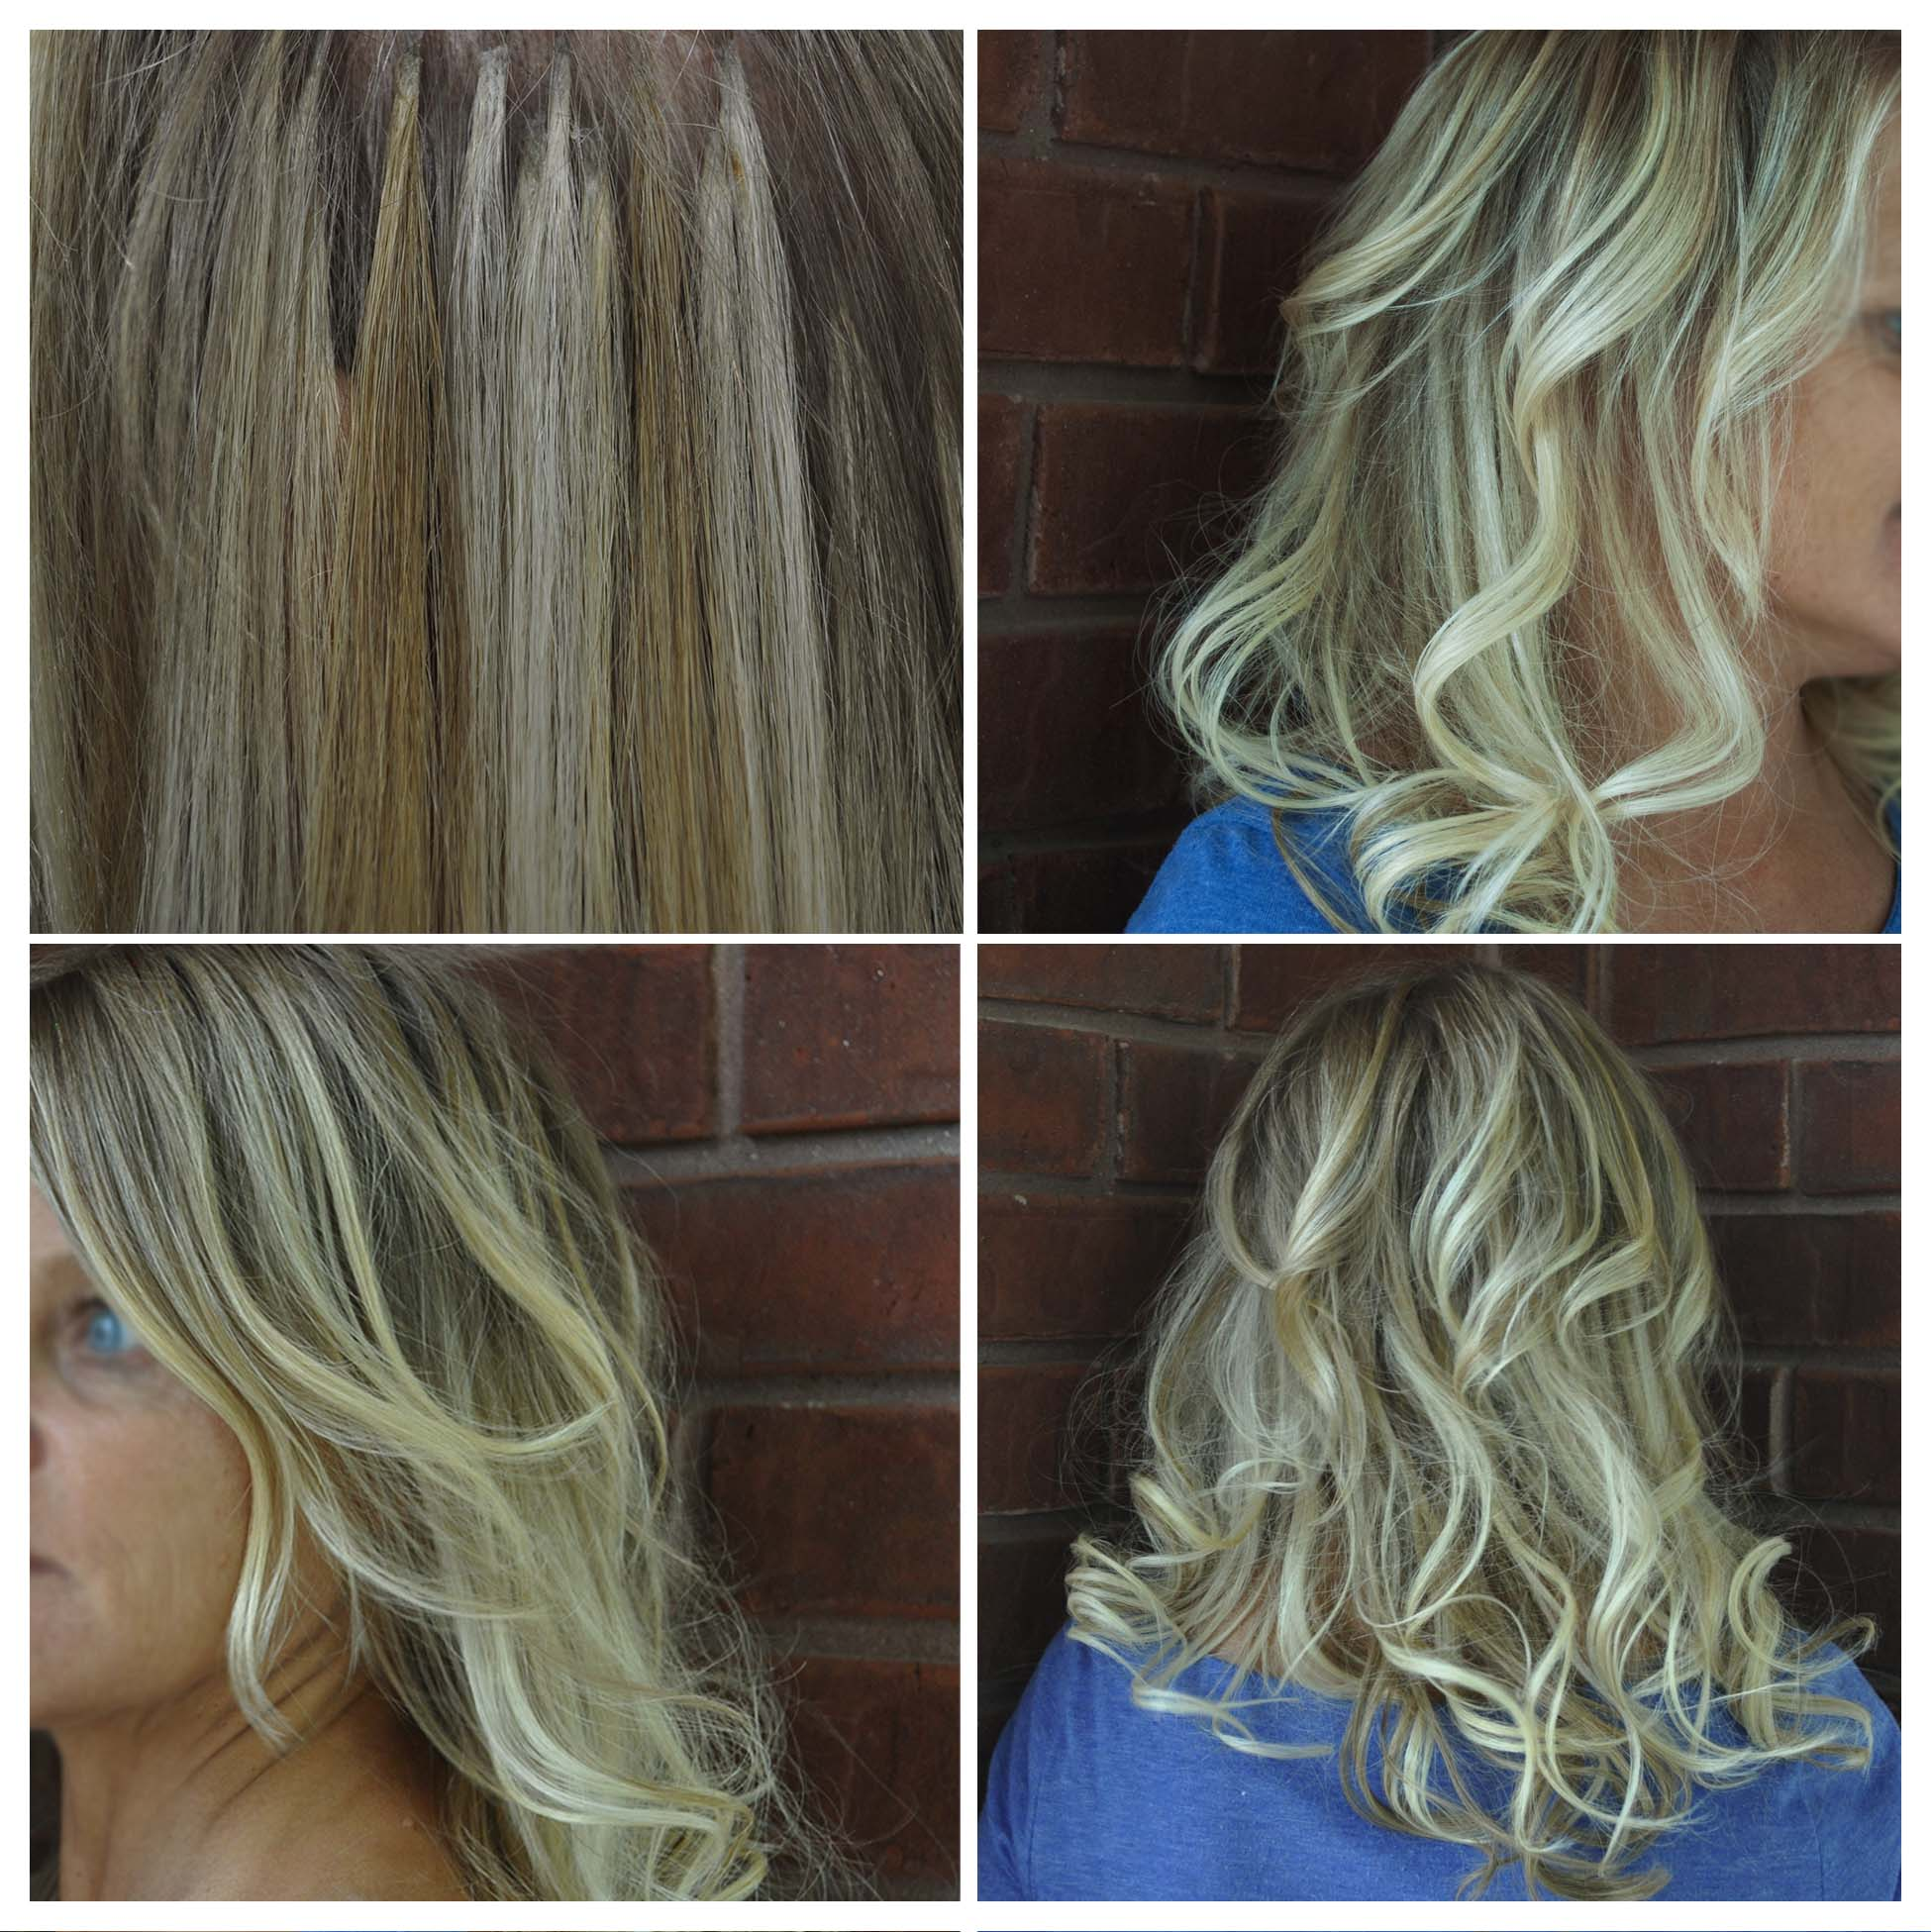 Quality Hair Extensions Di Biase Hair USA